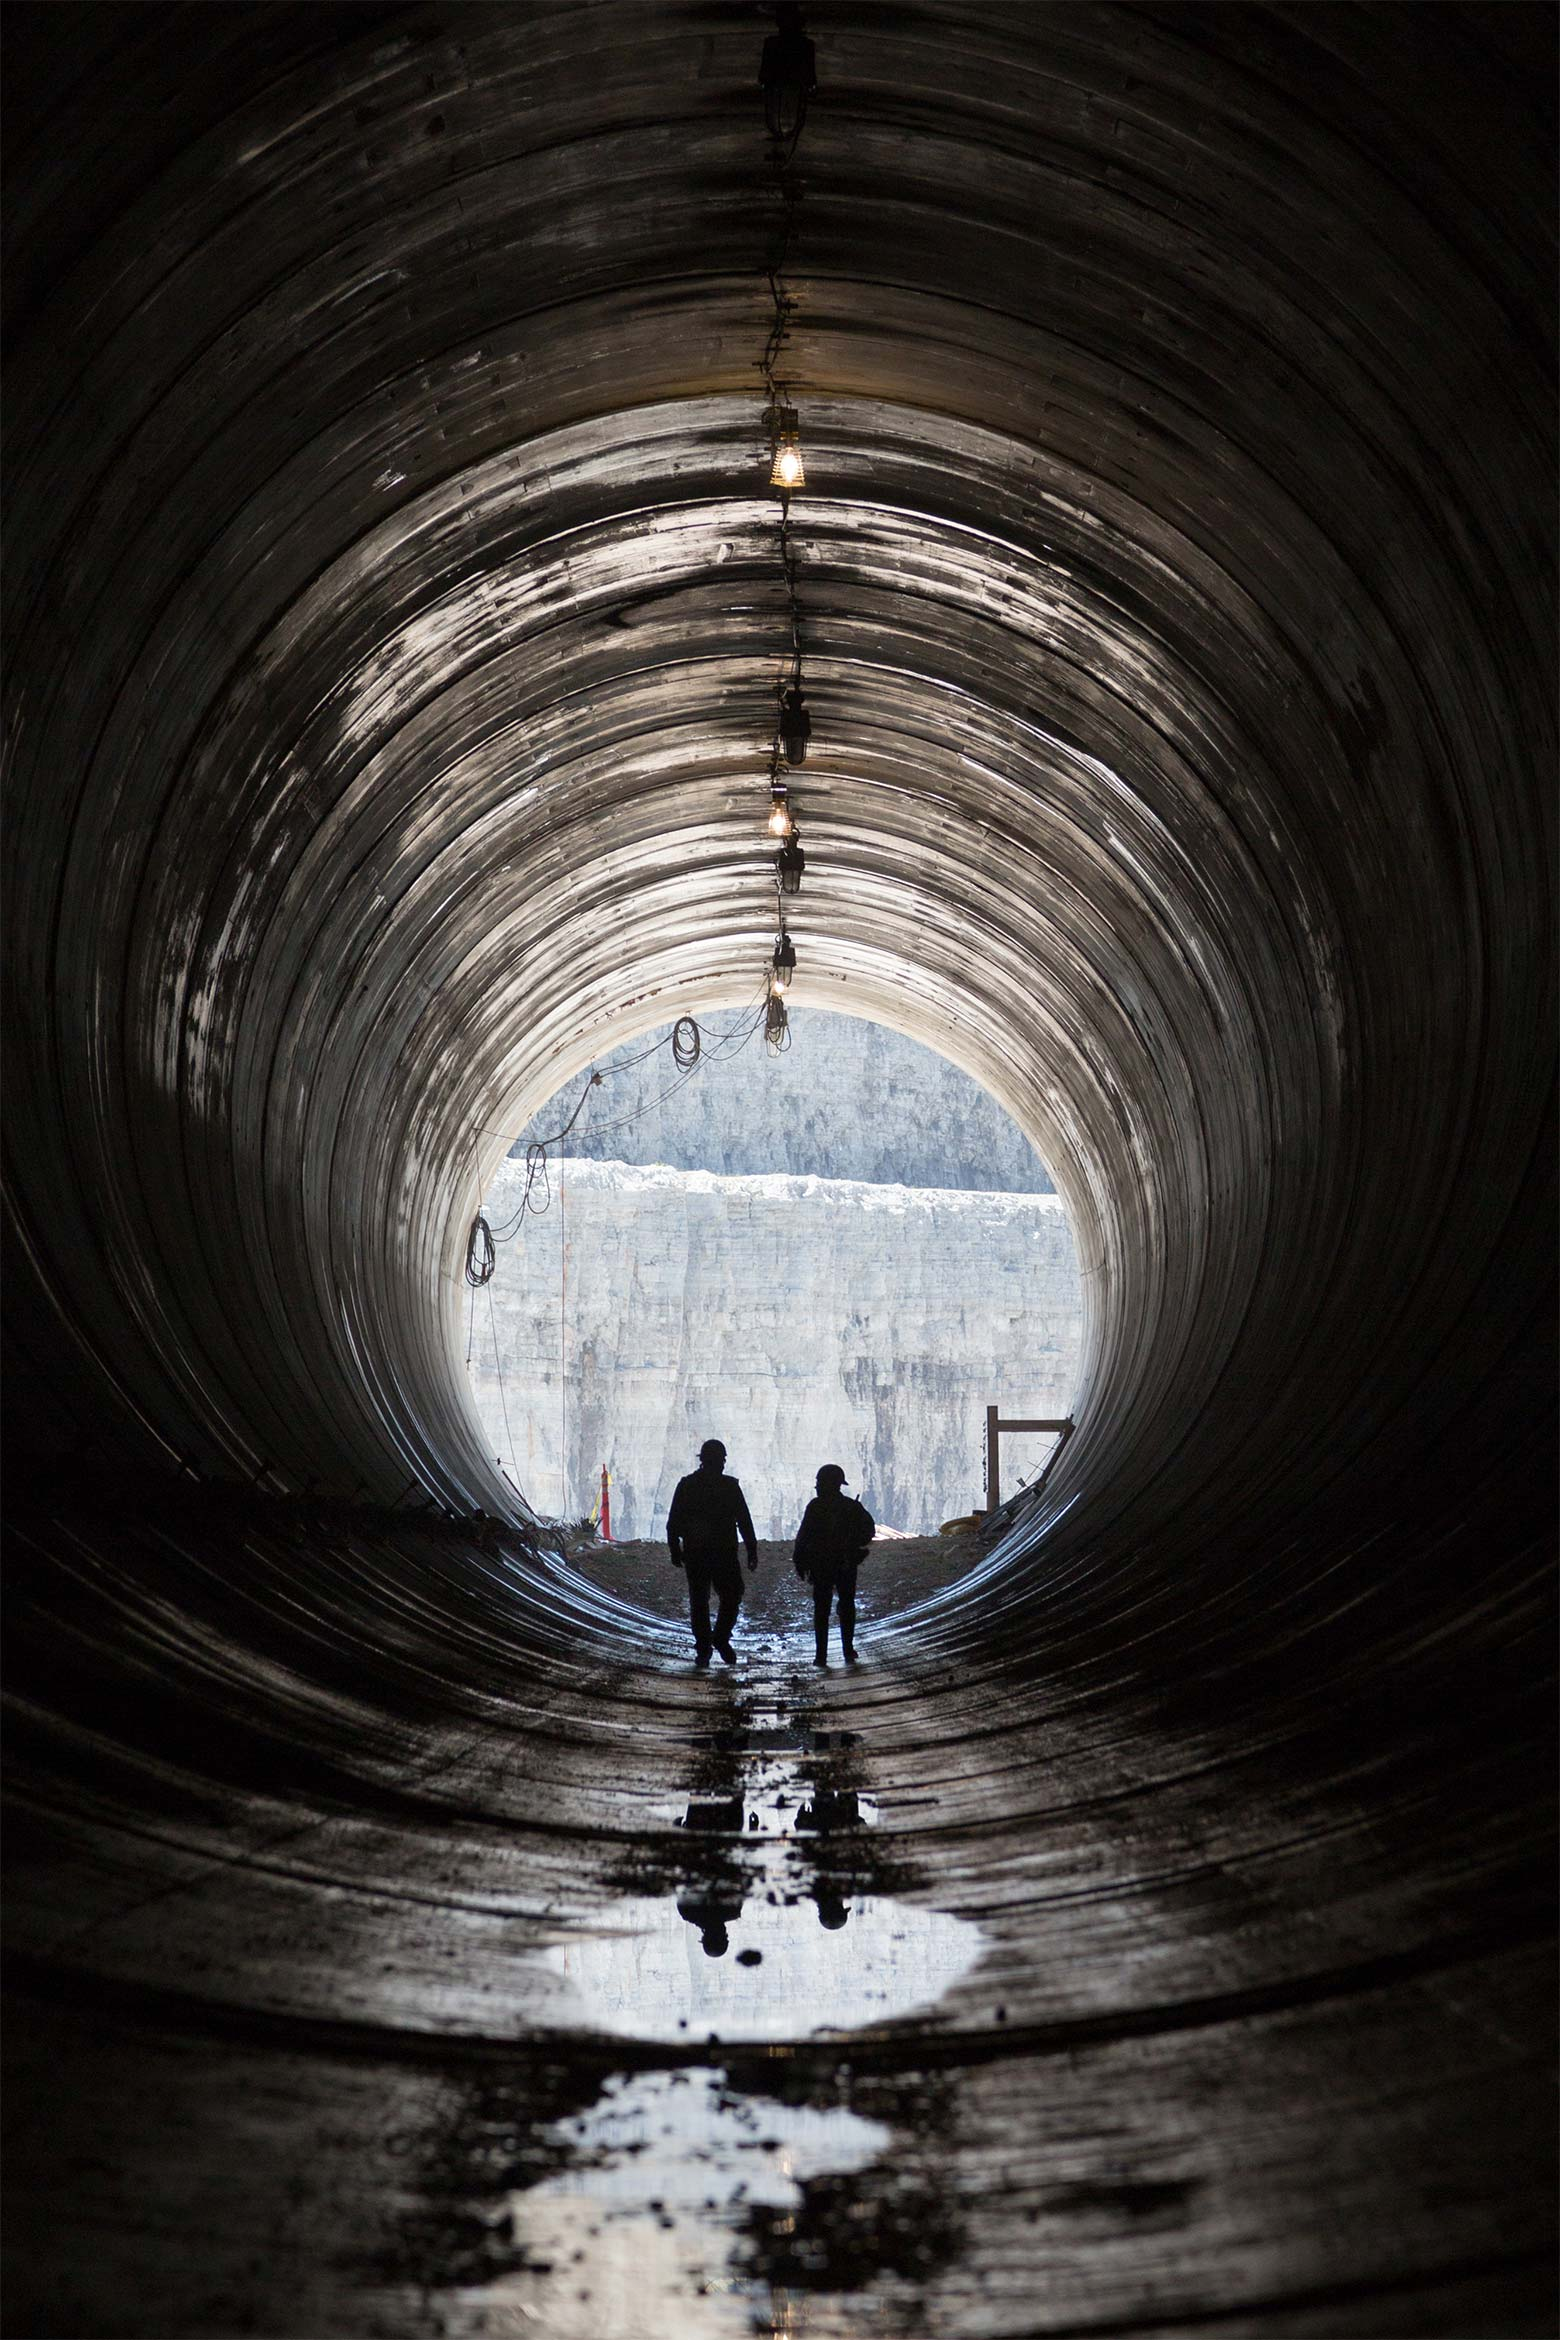 Construction workers exit the Deep Tunnel.